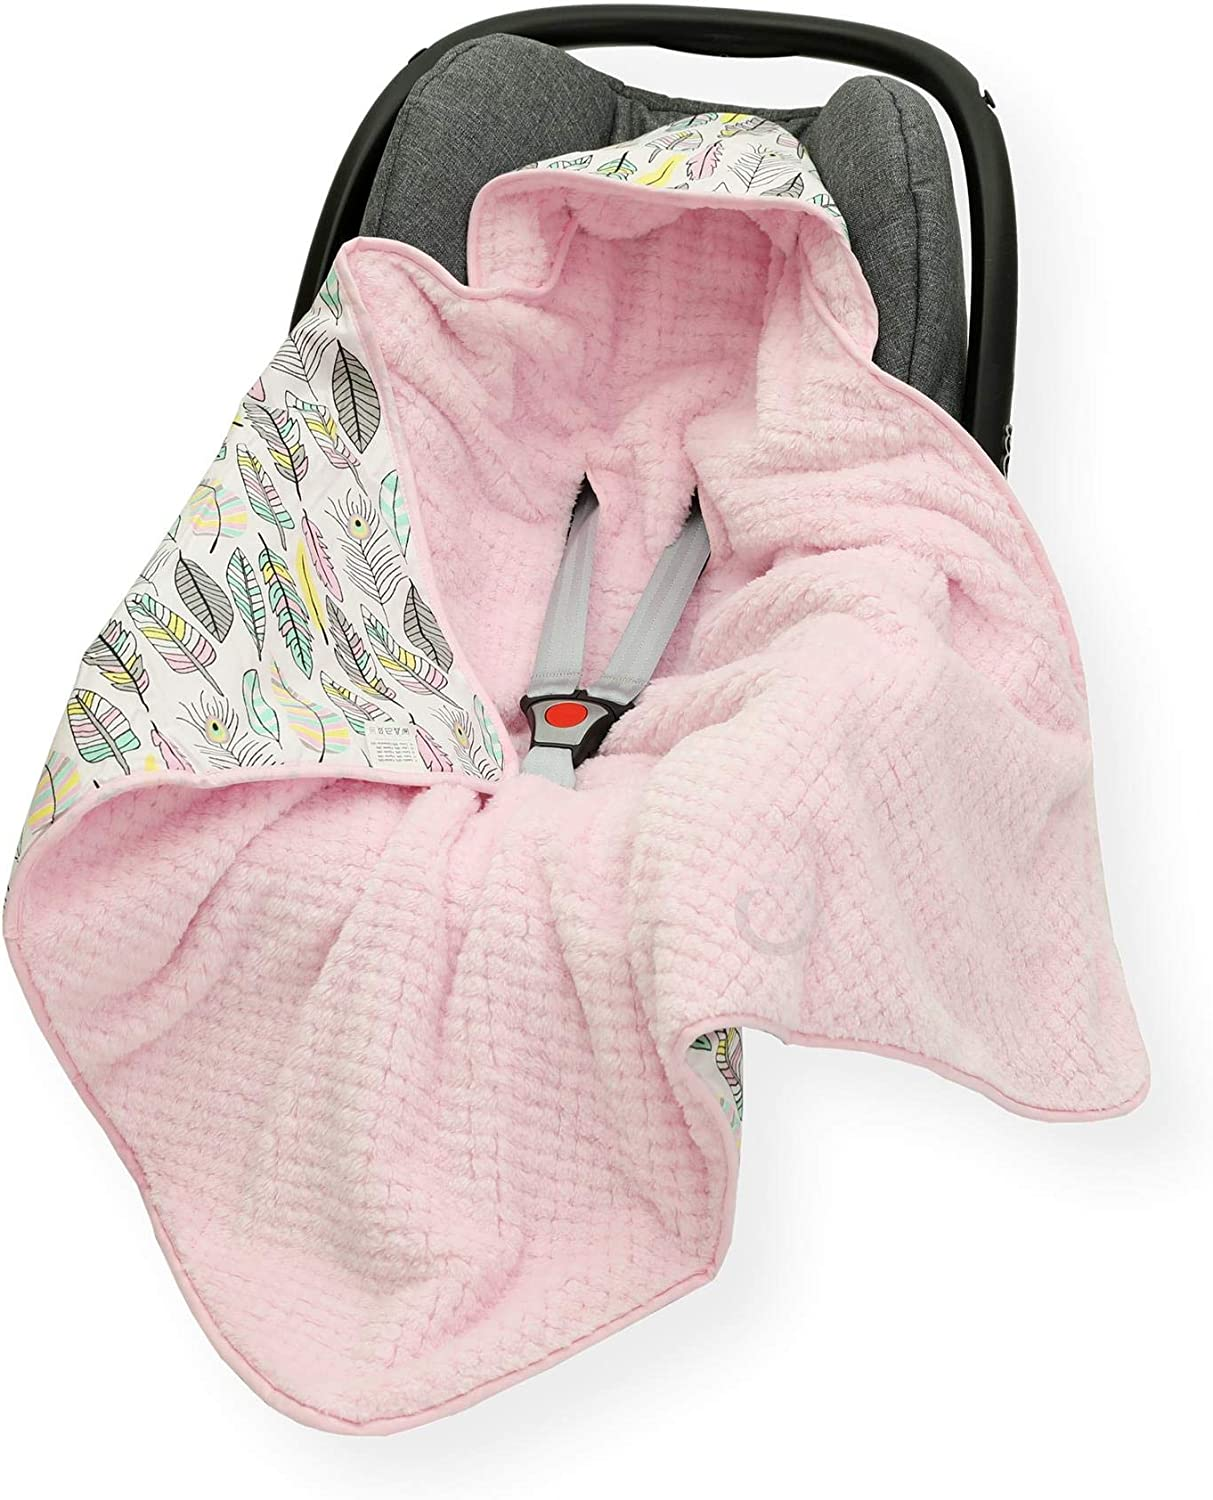 LG Grey Star on White//Grey CAR SEAT Baby Insert//Blanket//Cover//Cosy Toes//Foot muff Cotton /& Waffle-Effect Mink Plush 80 x 80cm Dual Layer with Hood